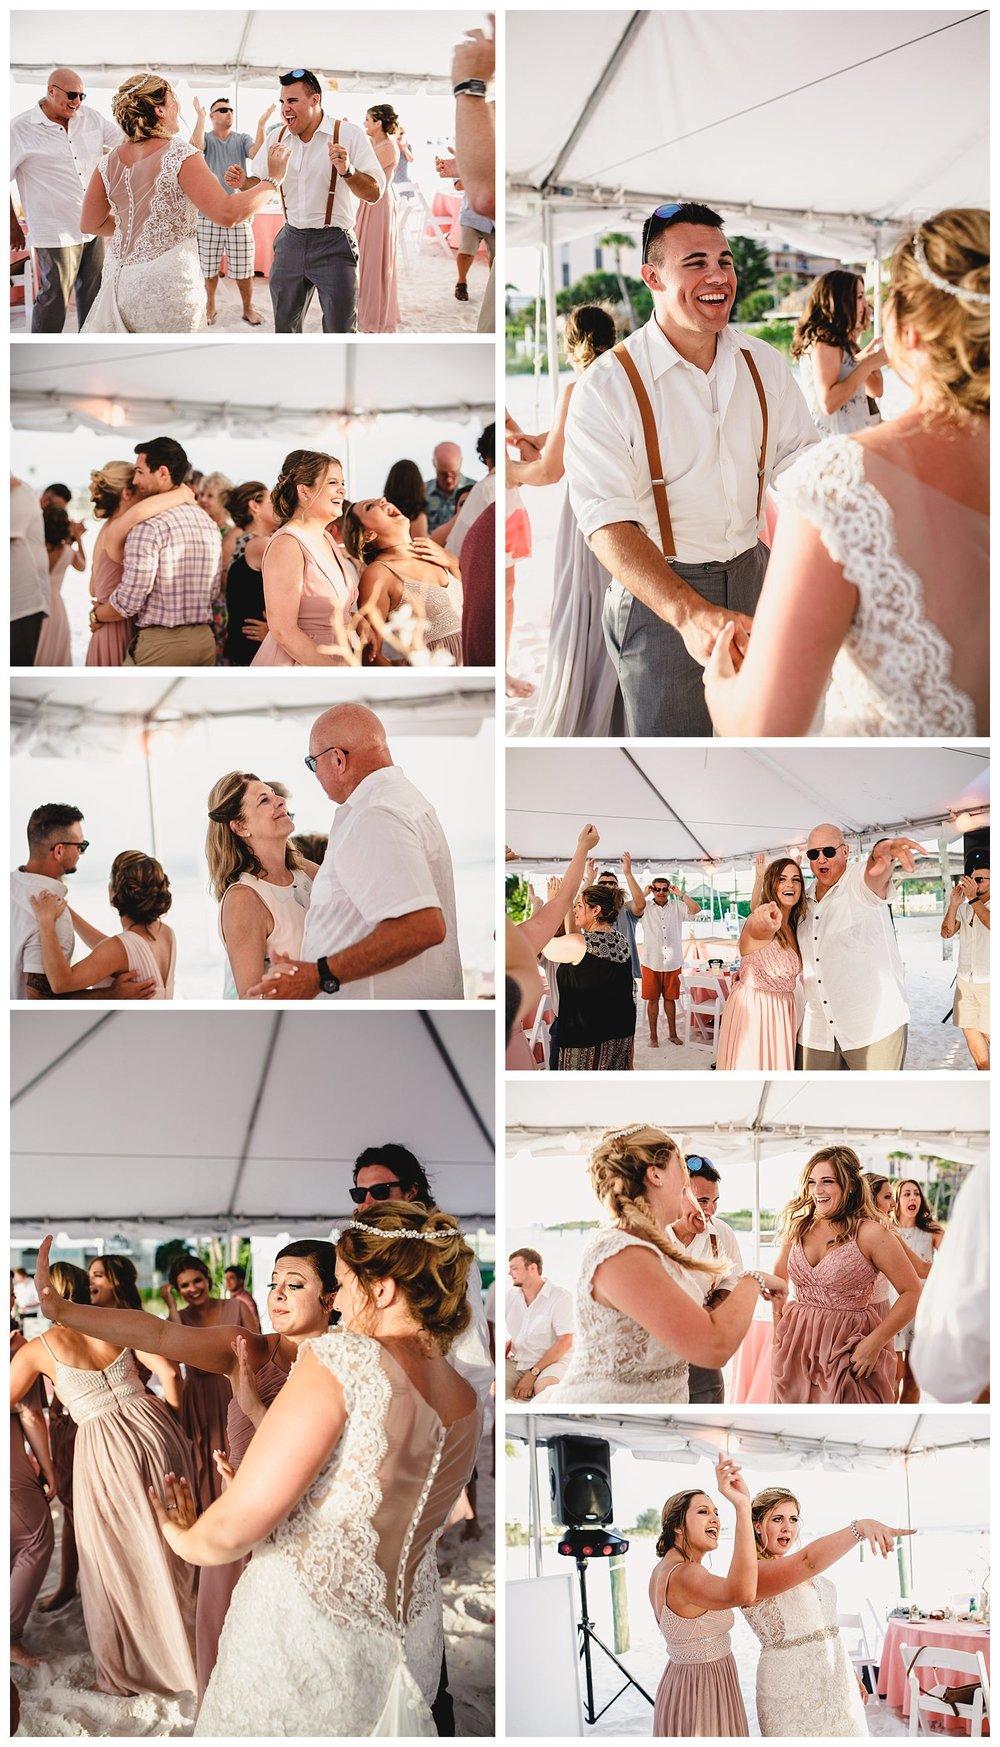 Kelsey_Diane_Photography_Destination_Wedding_Sarasota_Florida_Beach_Wedding_Alex_Austin_0671.jpg